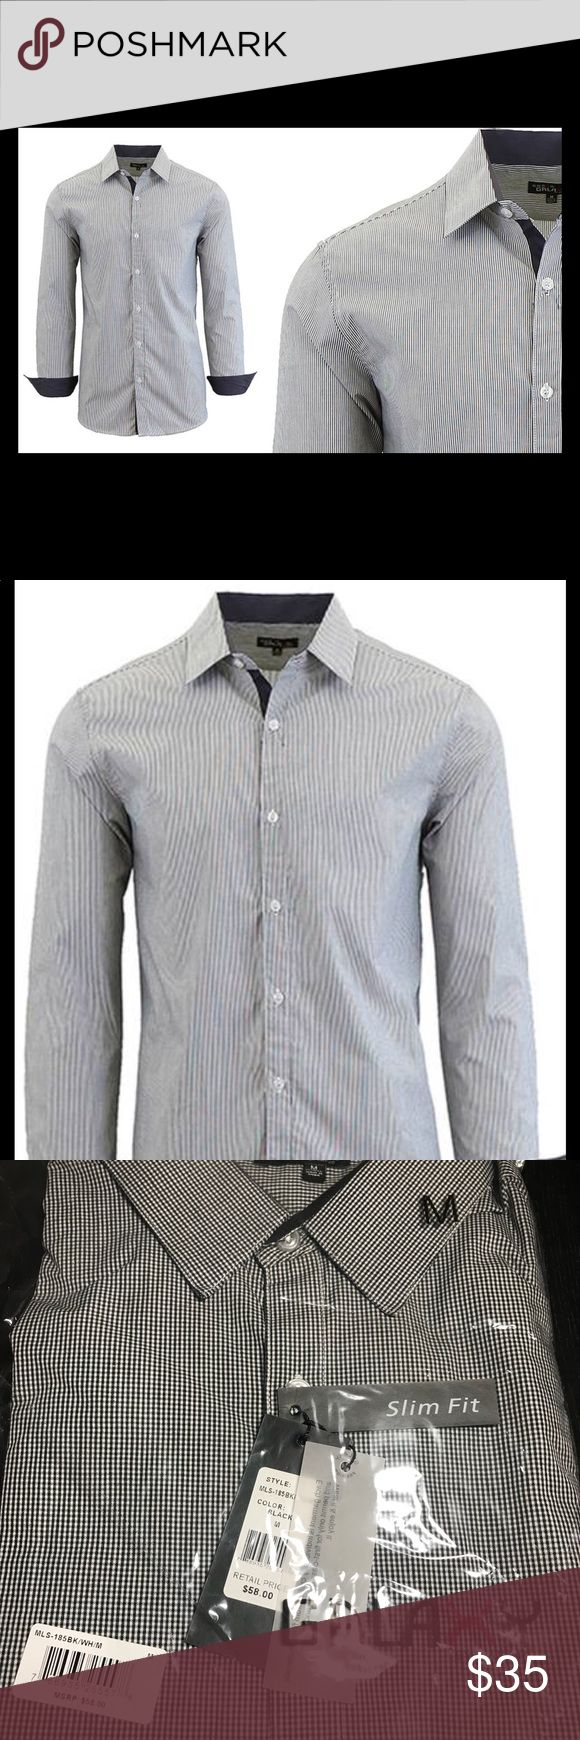 Mens slim fit dress shirt..Medium.. Featuring checkered or pinstripe fabric design, this dress shirt can be paired with suit and tie for a great formal look galaxy Shirts Dress Shirts